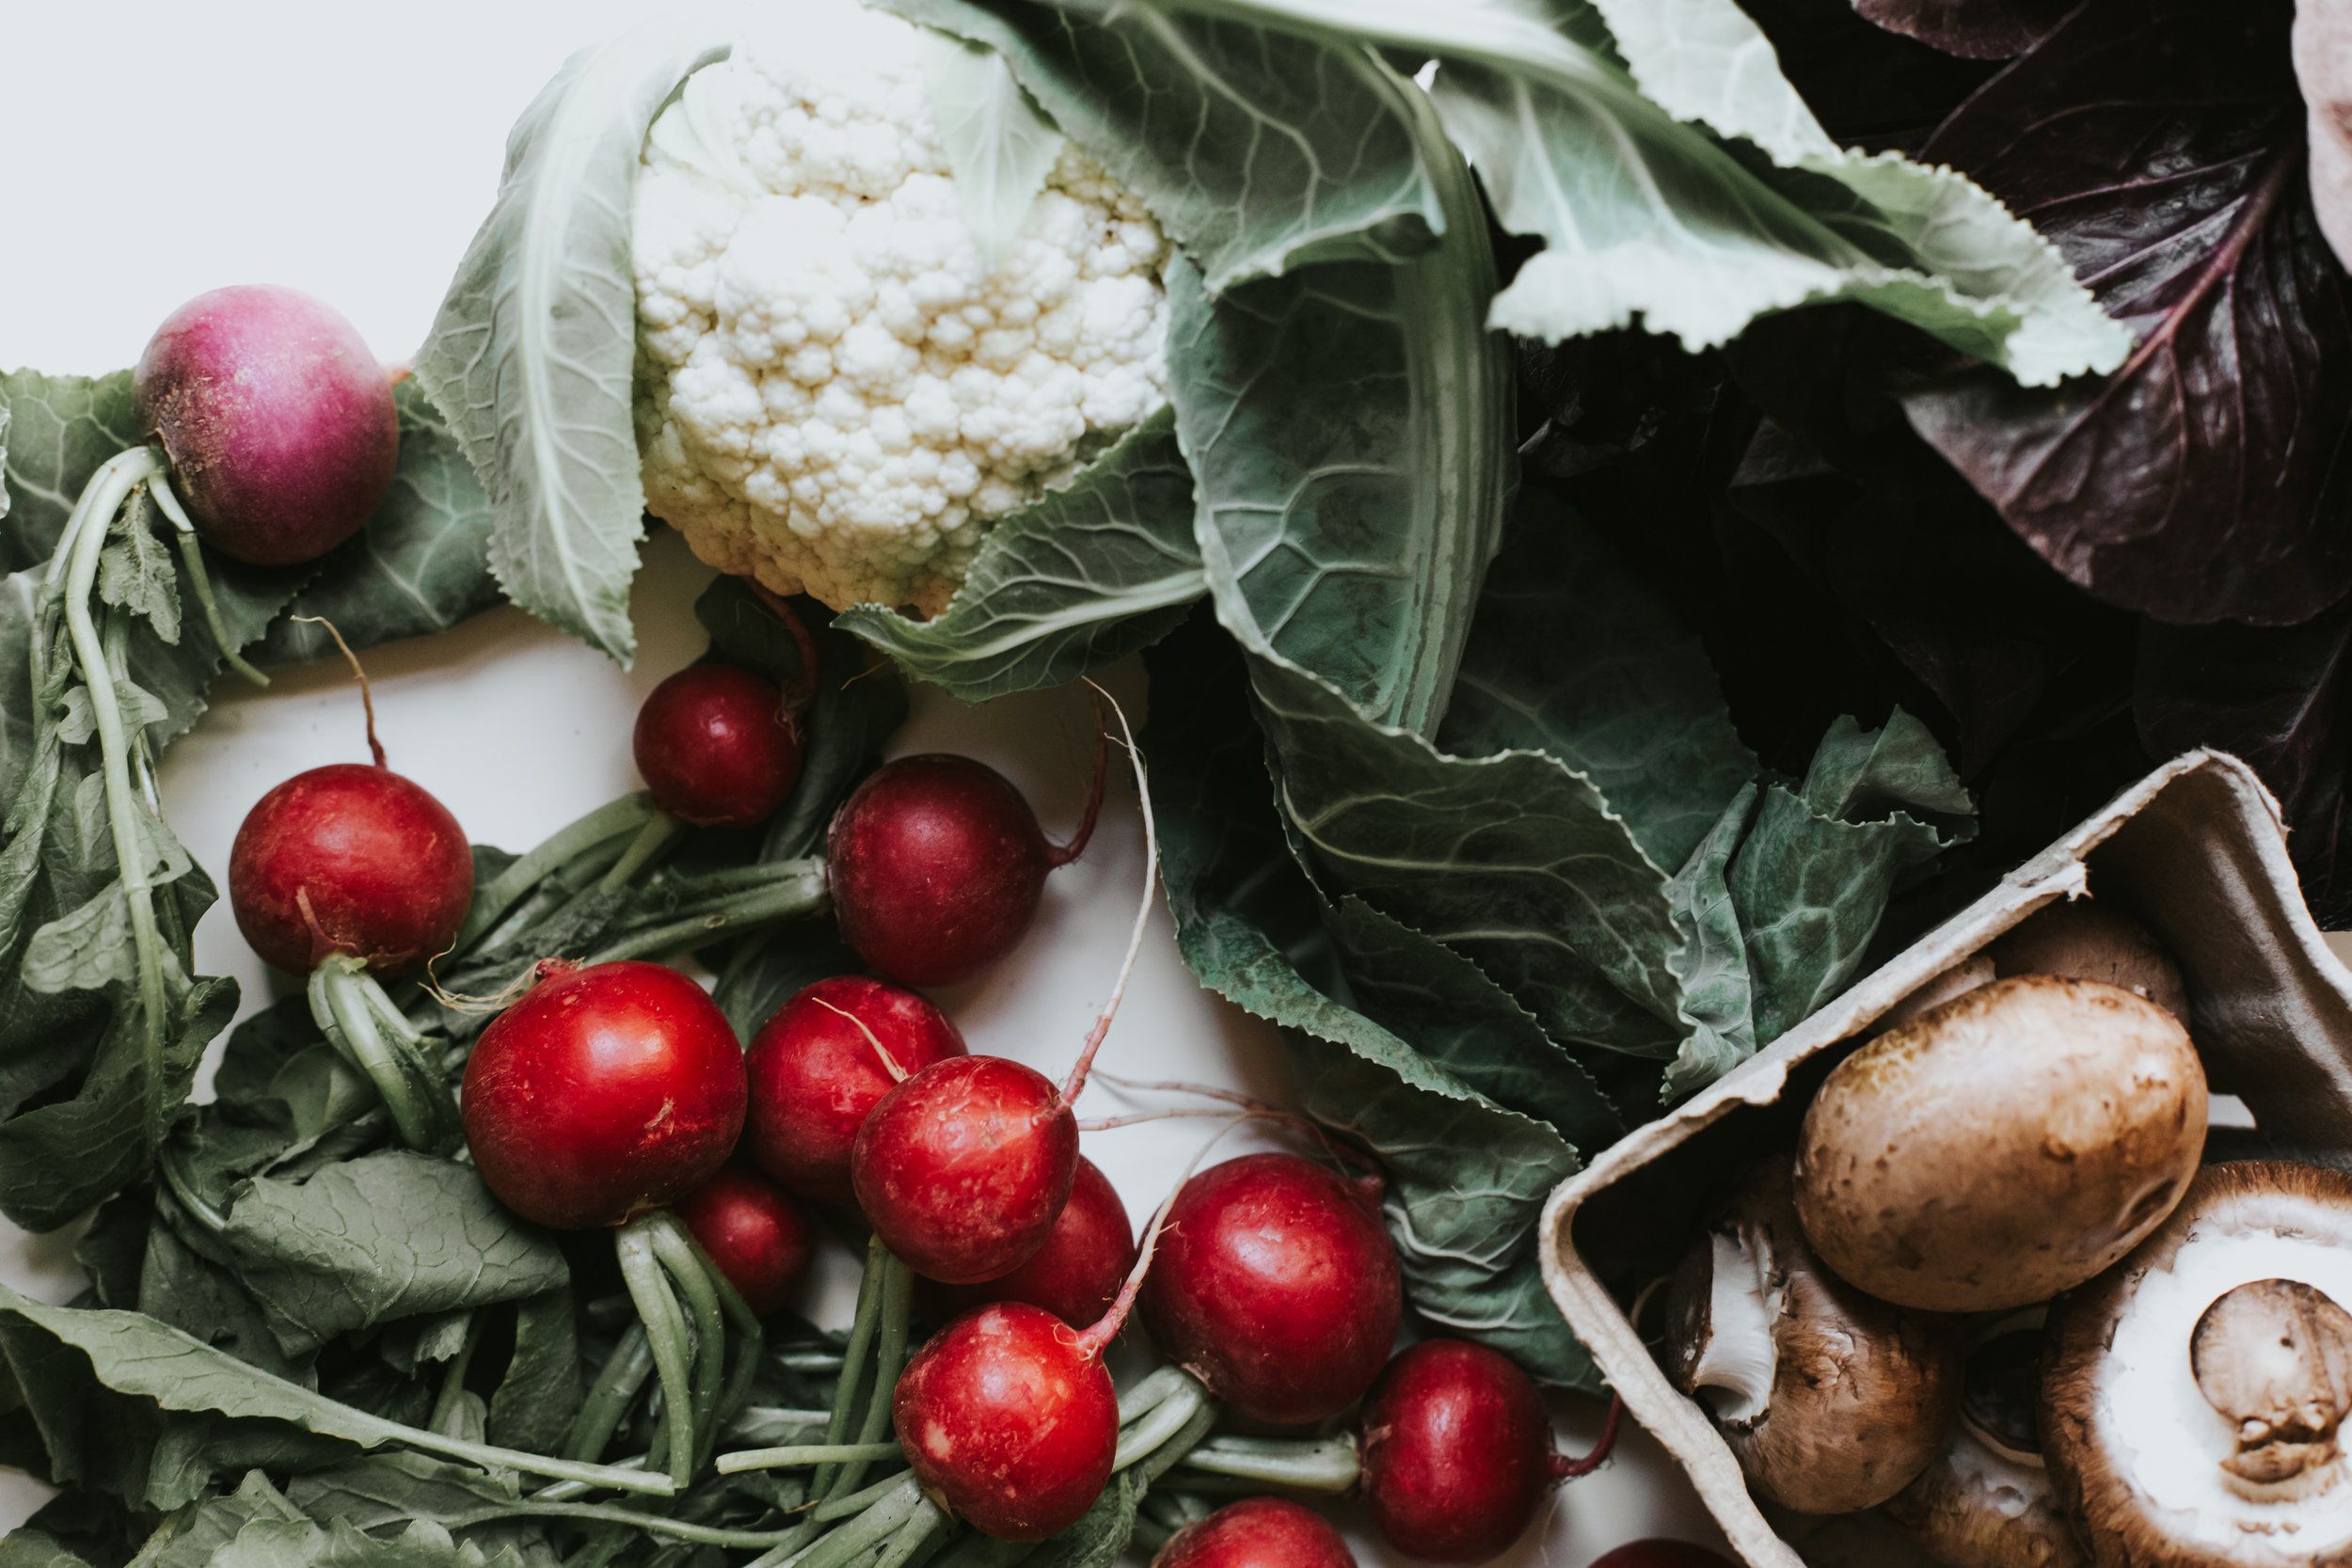 recipes - a catalog of seasonal, simple dishes and drinks